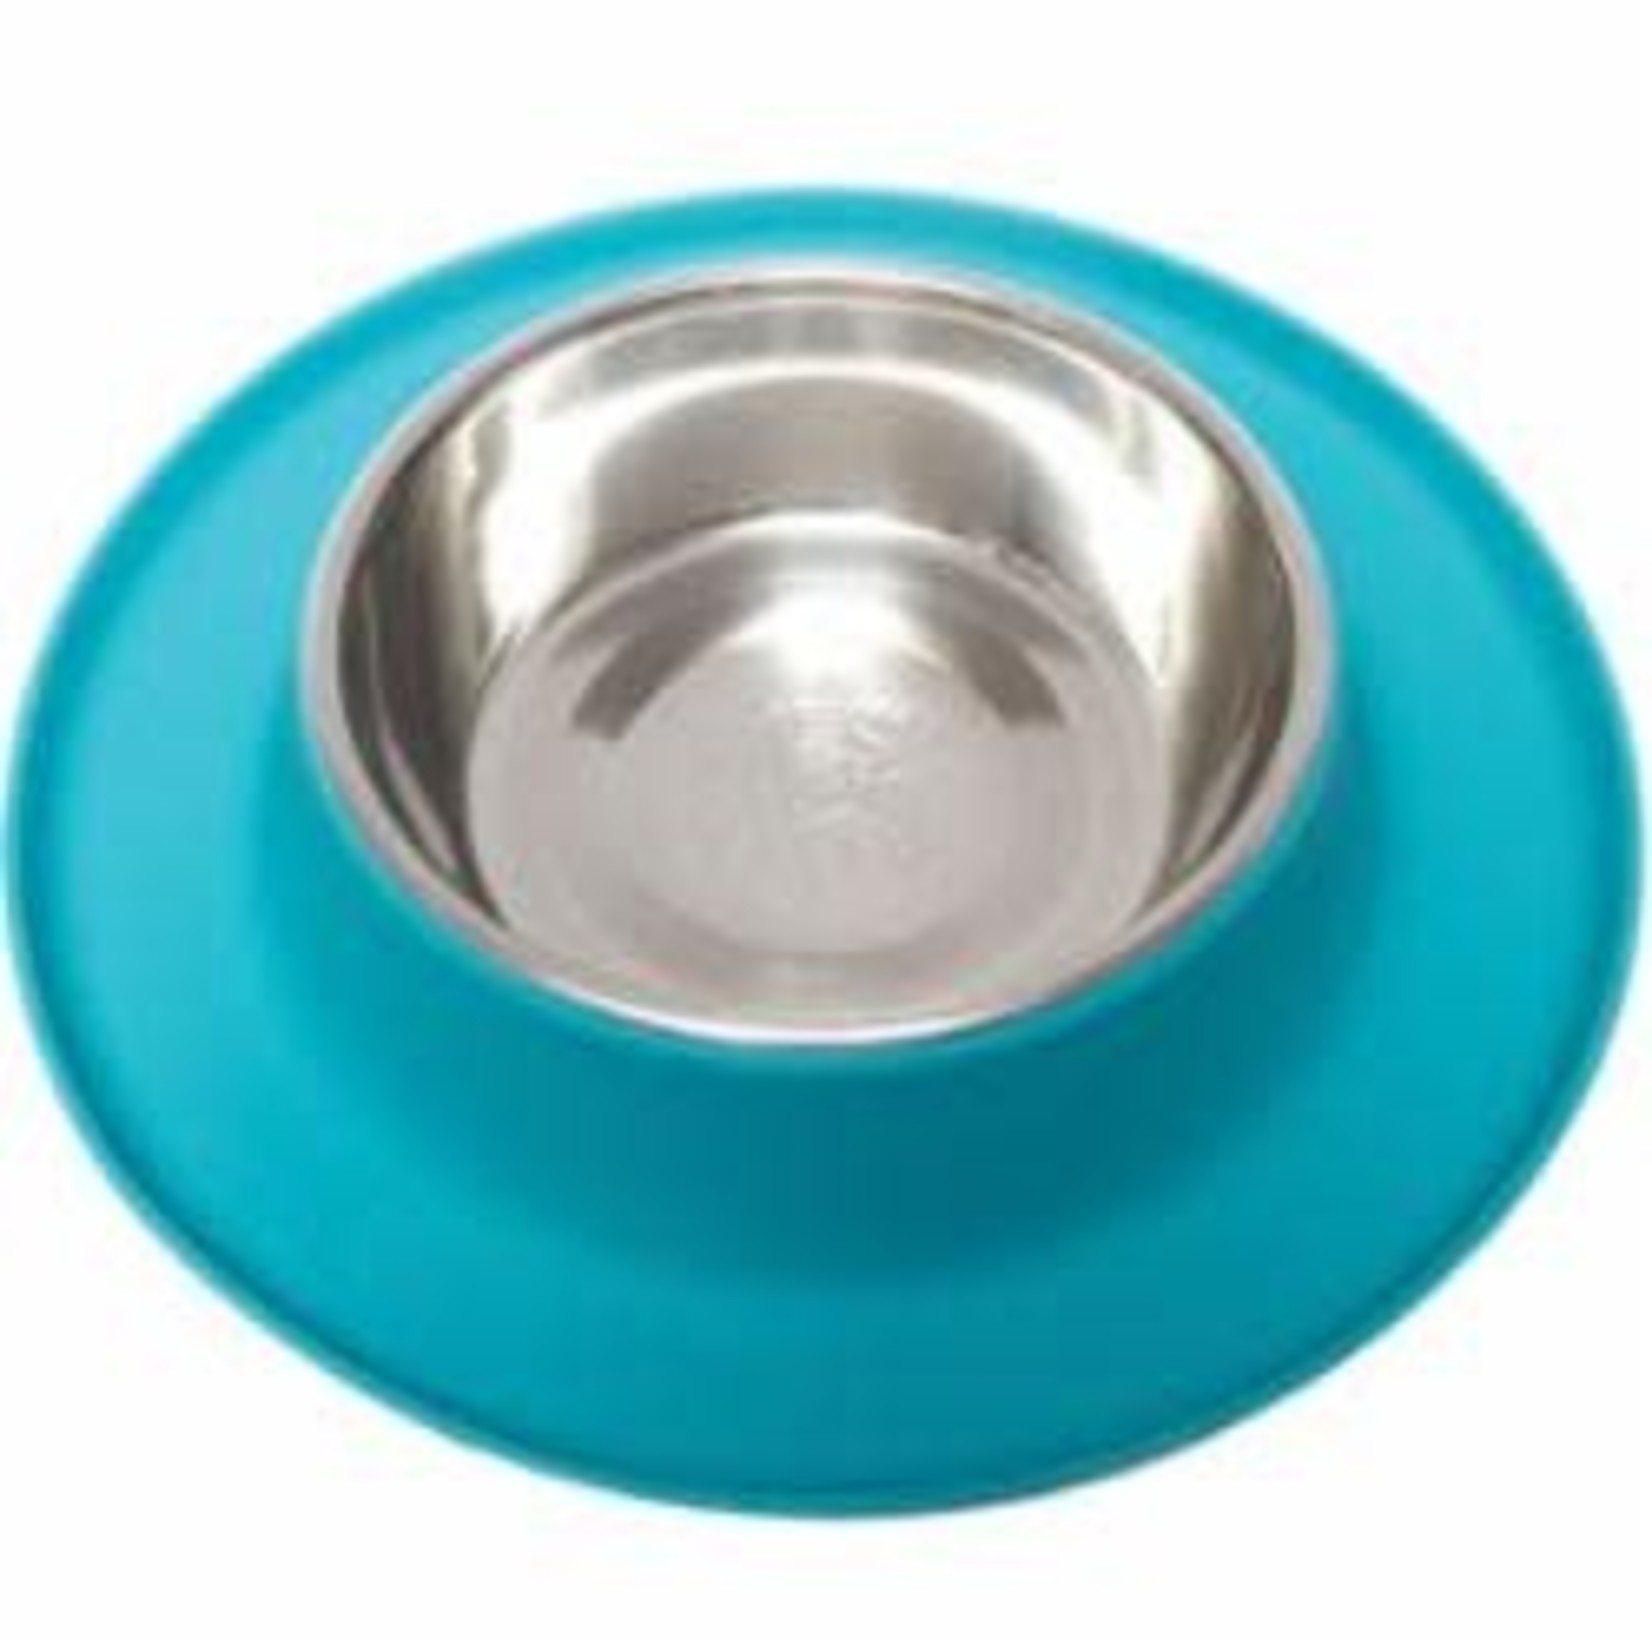 Messy Mutts Messy Mutts Dog Silicone Feeder Blue 1.5 CUP